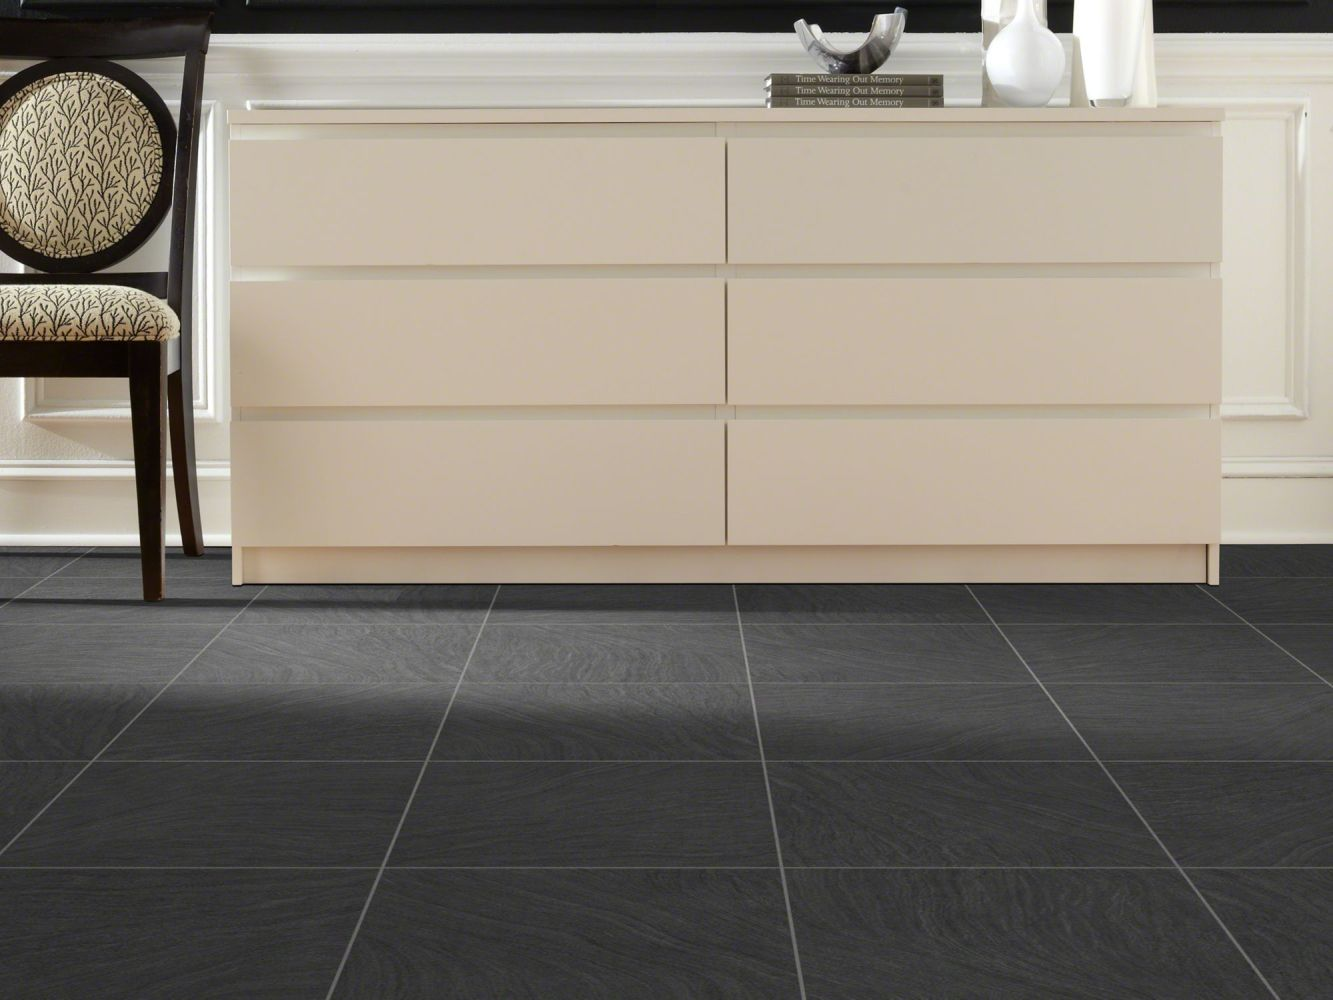 Shaw Floors Resilient Property Solutions Canvas Tile Professional 00502_VE149